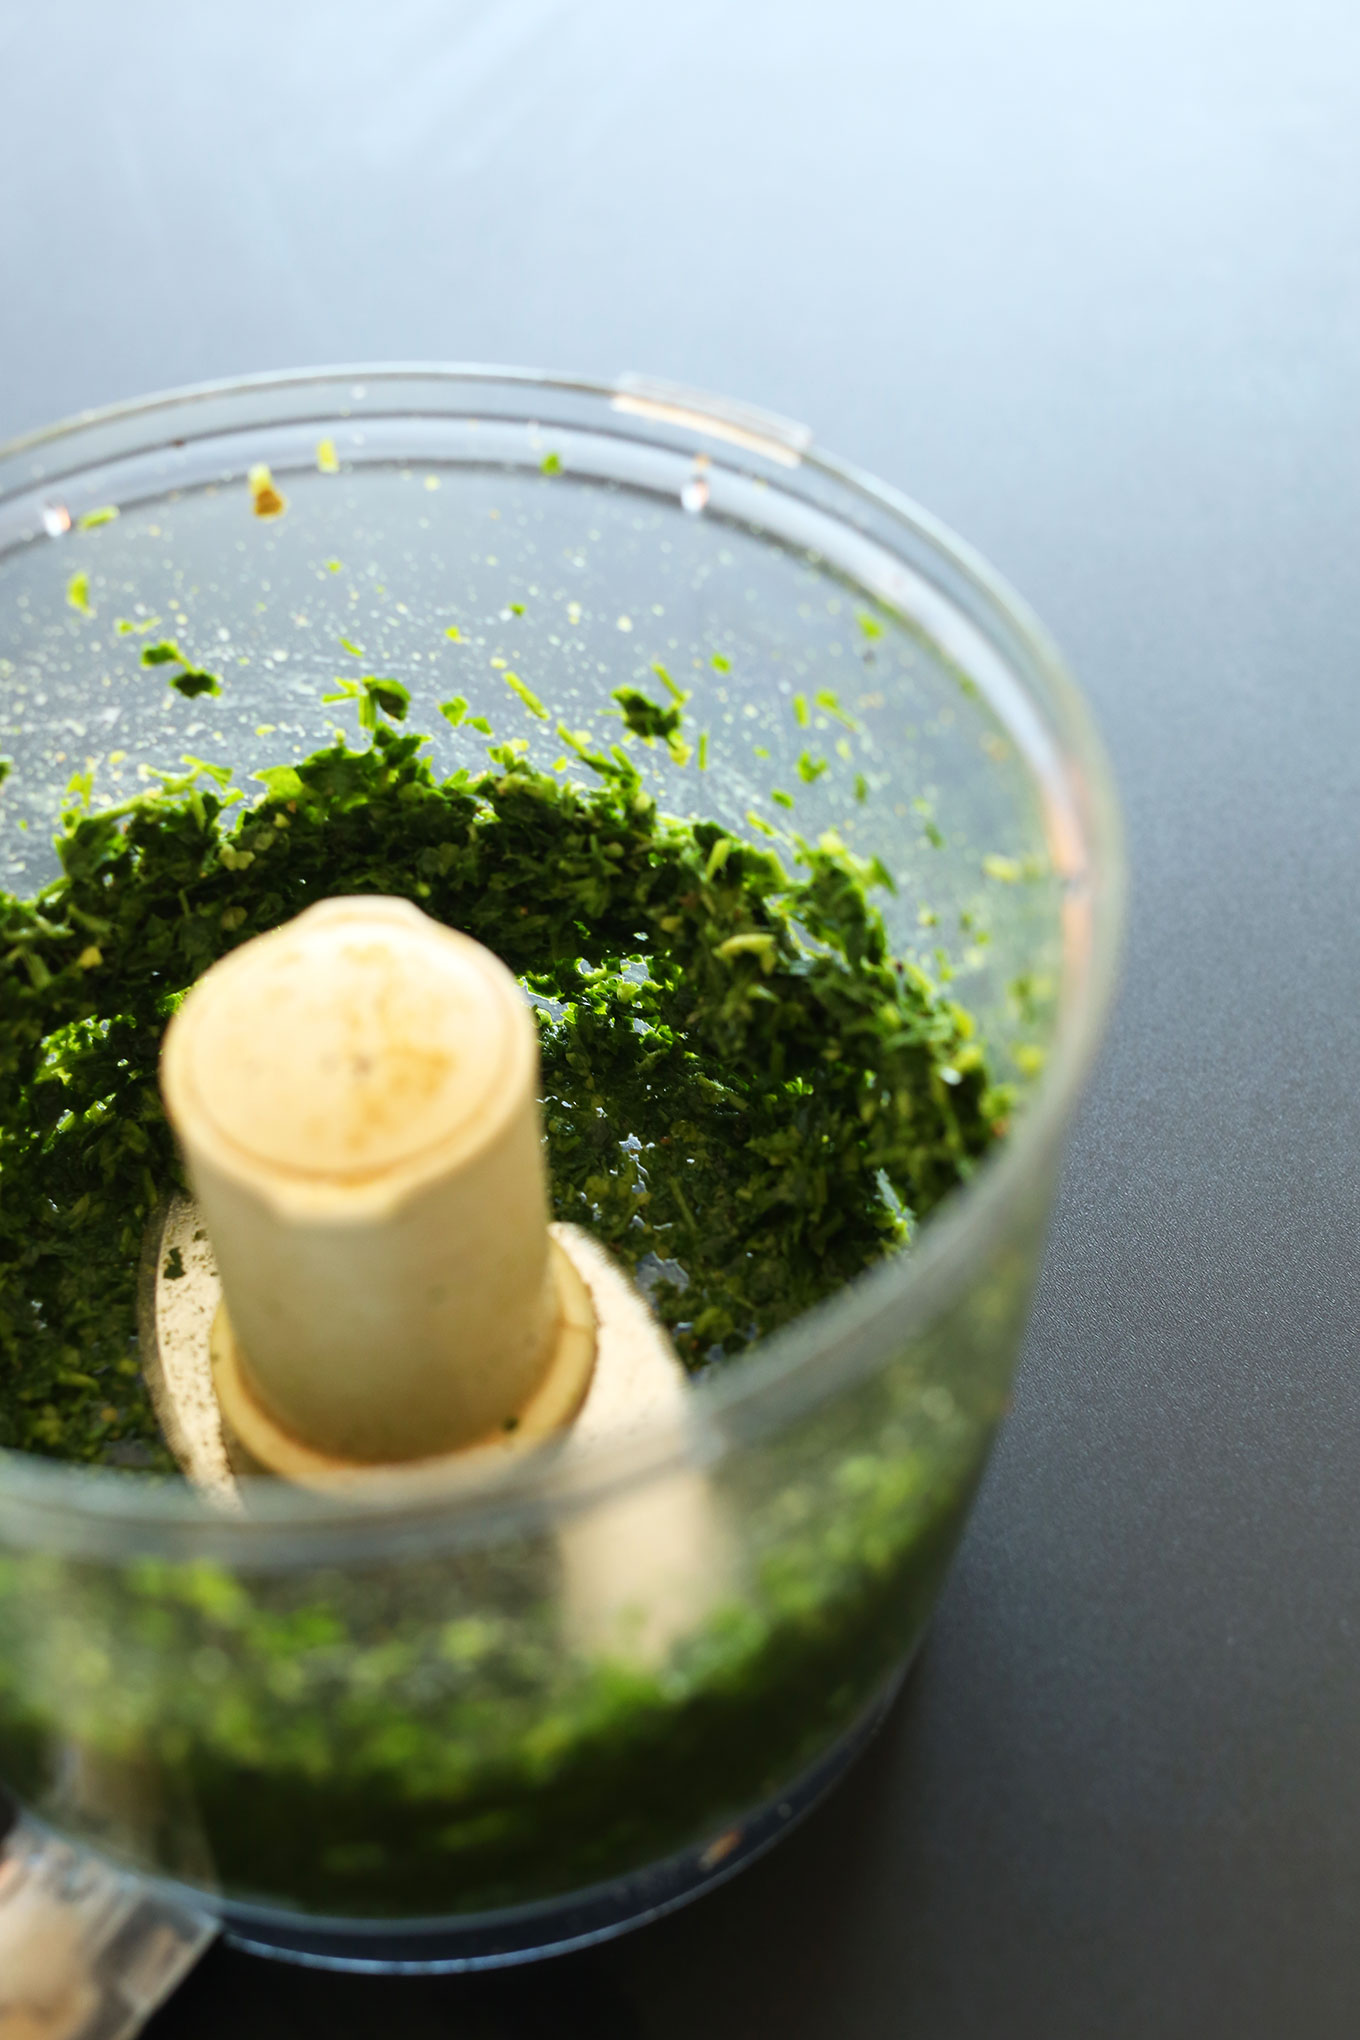 Pulsing green ingredients for falafel burgers in a food processor